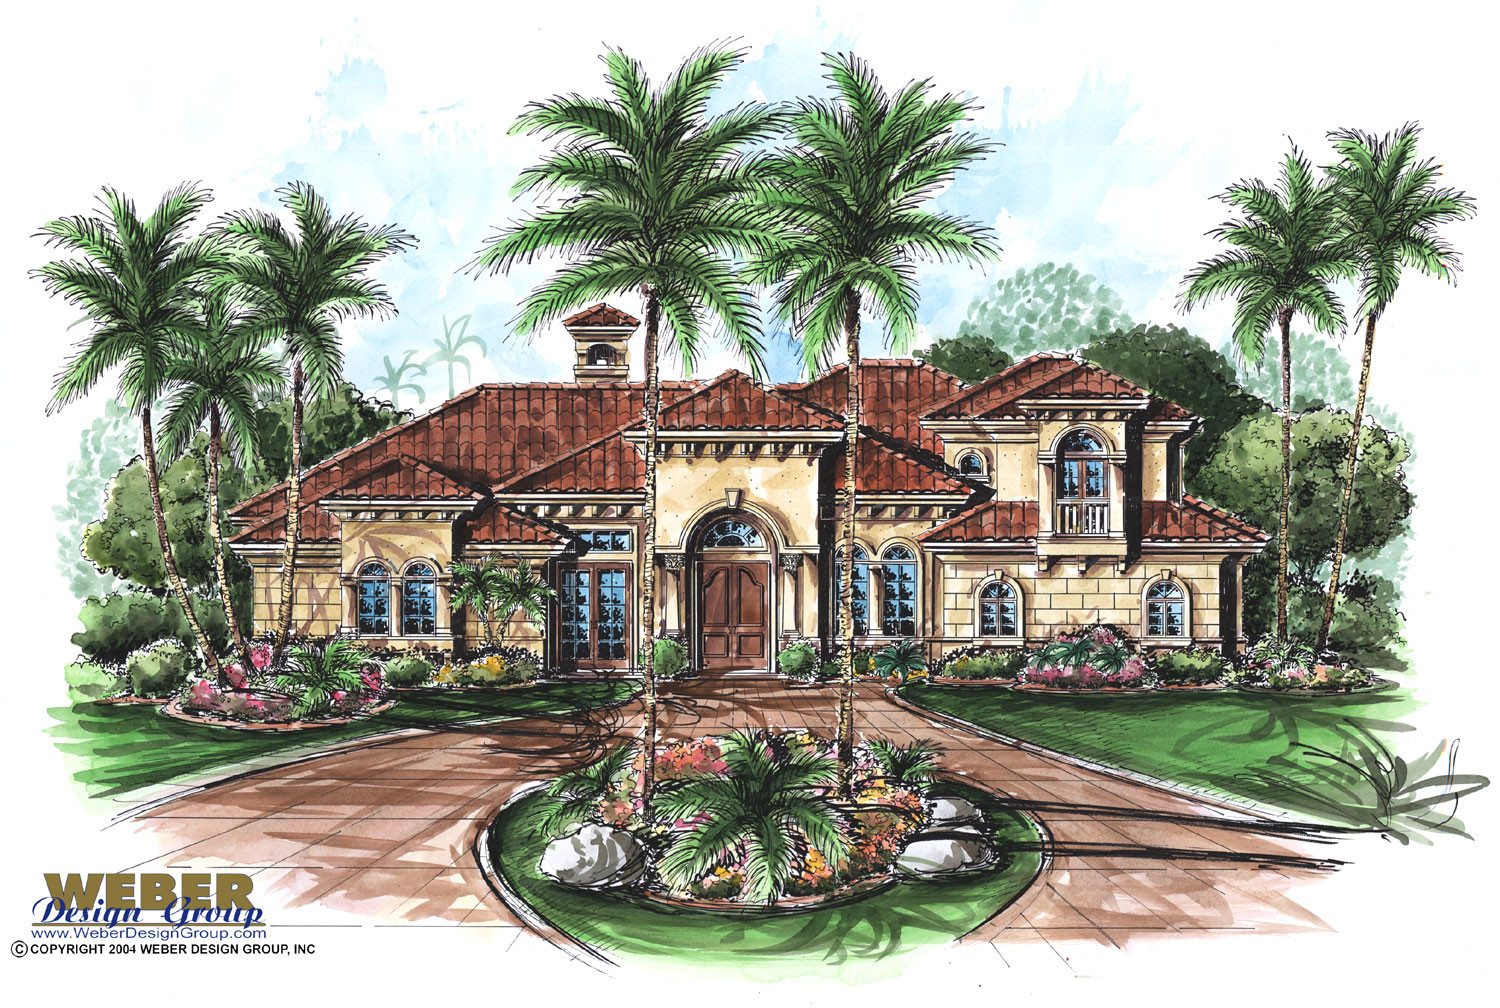 Mediterranean House Plan: 2 Story Tuscan Style Home Floor Plan